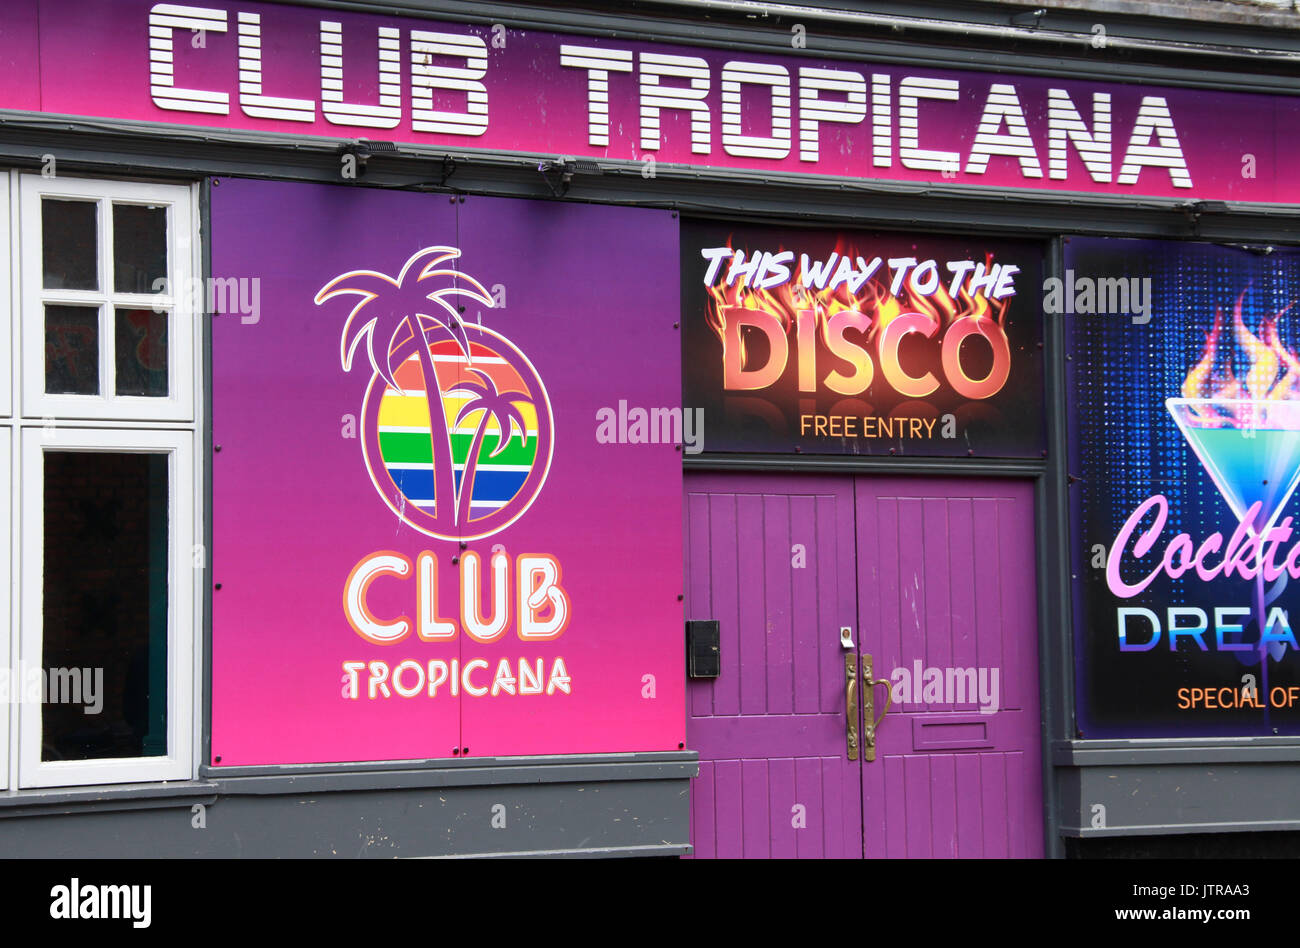 Club Tropicana in Manchester - Stock Image